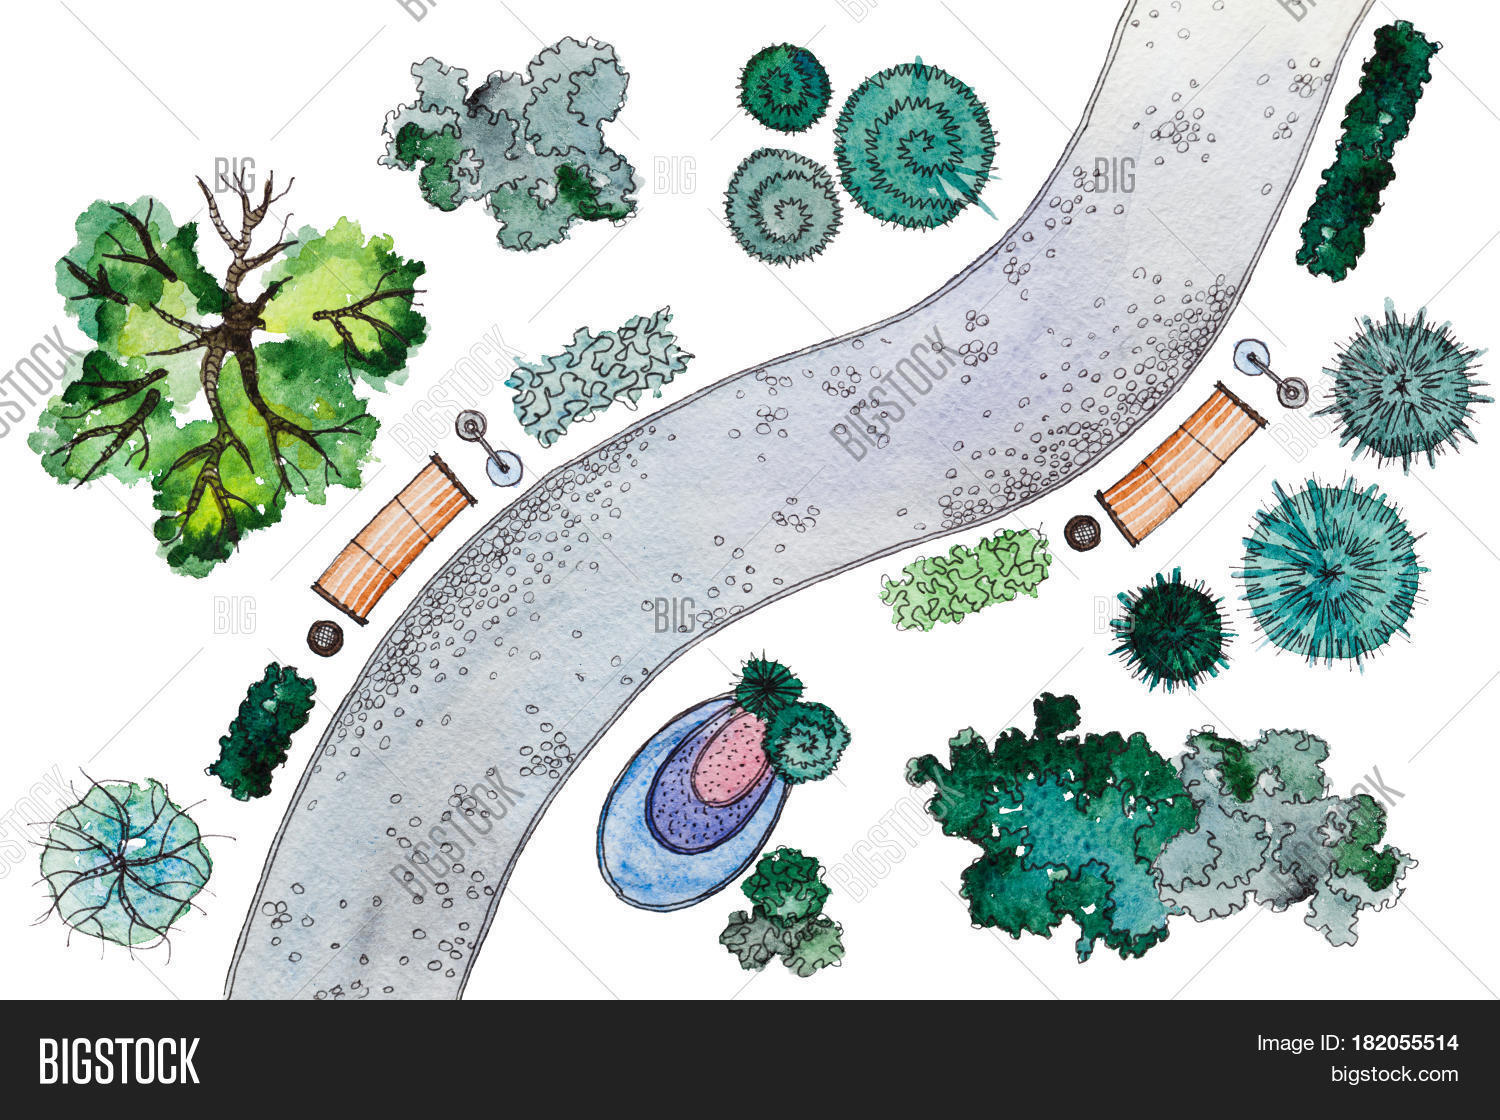 Set Of Hand Drawn Watercolor Pictorial Landscape Design Elements: Different  Types Of Green Trees,